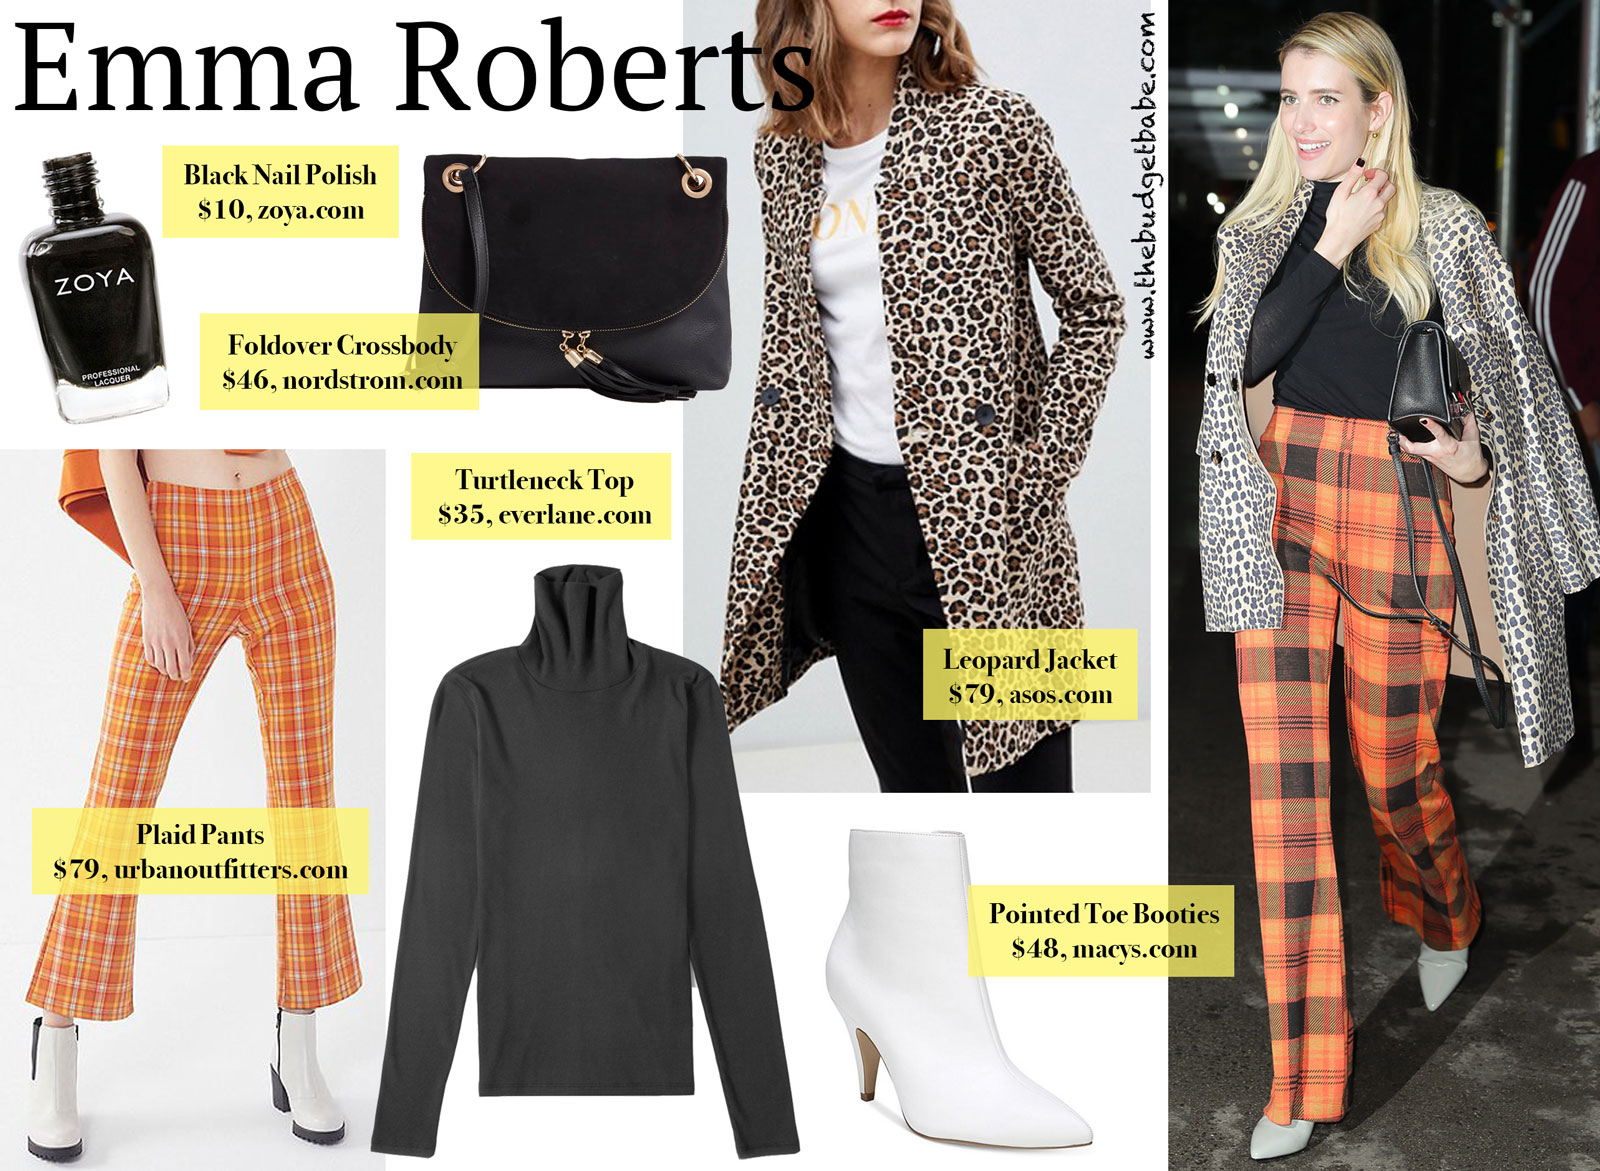 Emma Roberts Orange Plaid Pants Look for Less